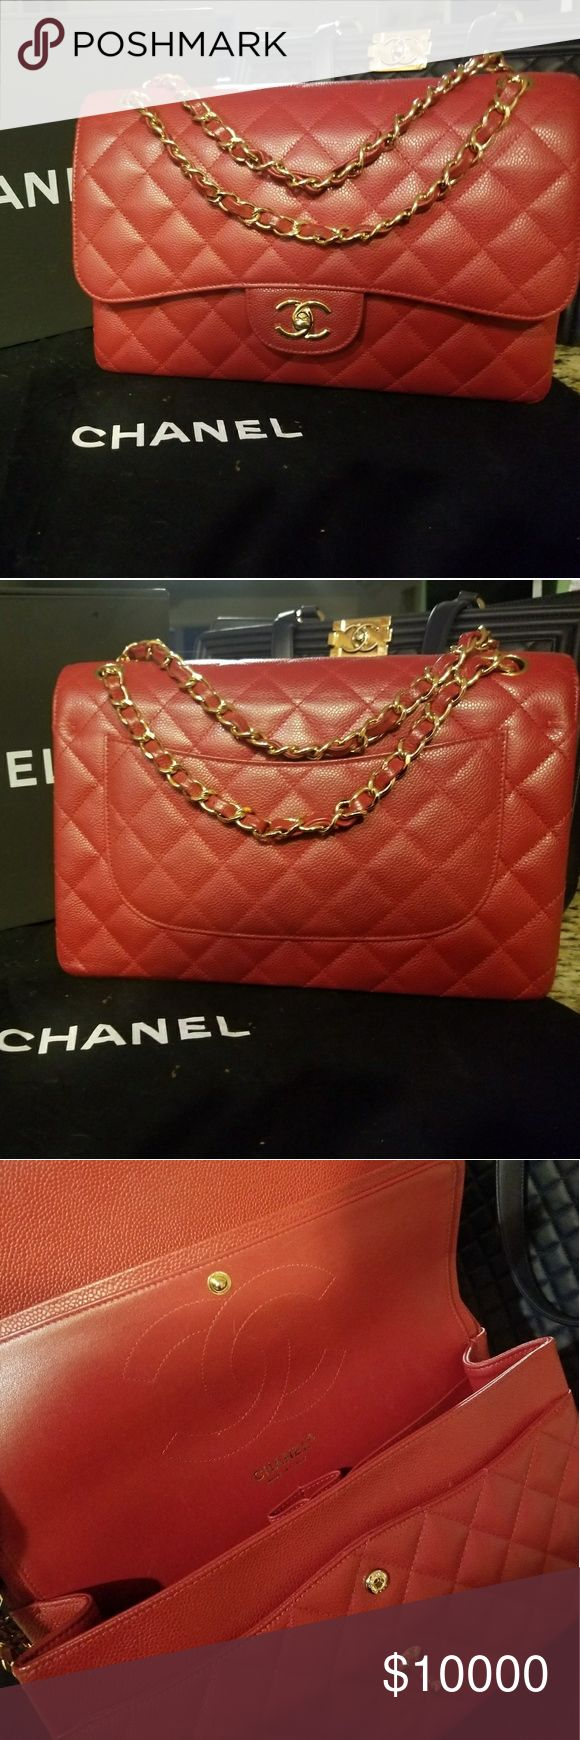 CHANEL CLASSIC JUMBO CAVIAR PURSE ***NOT LOOKING TO SELL YET***  11.8″ W x 7.7″ H x 3.9″D  Caviar Leather CHANEL Bags